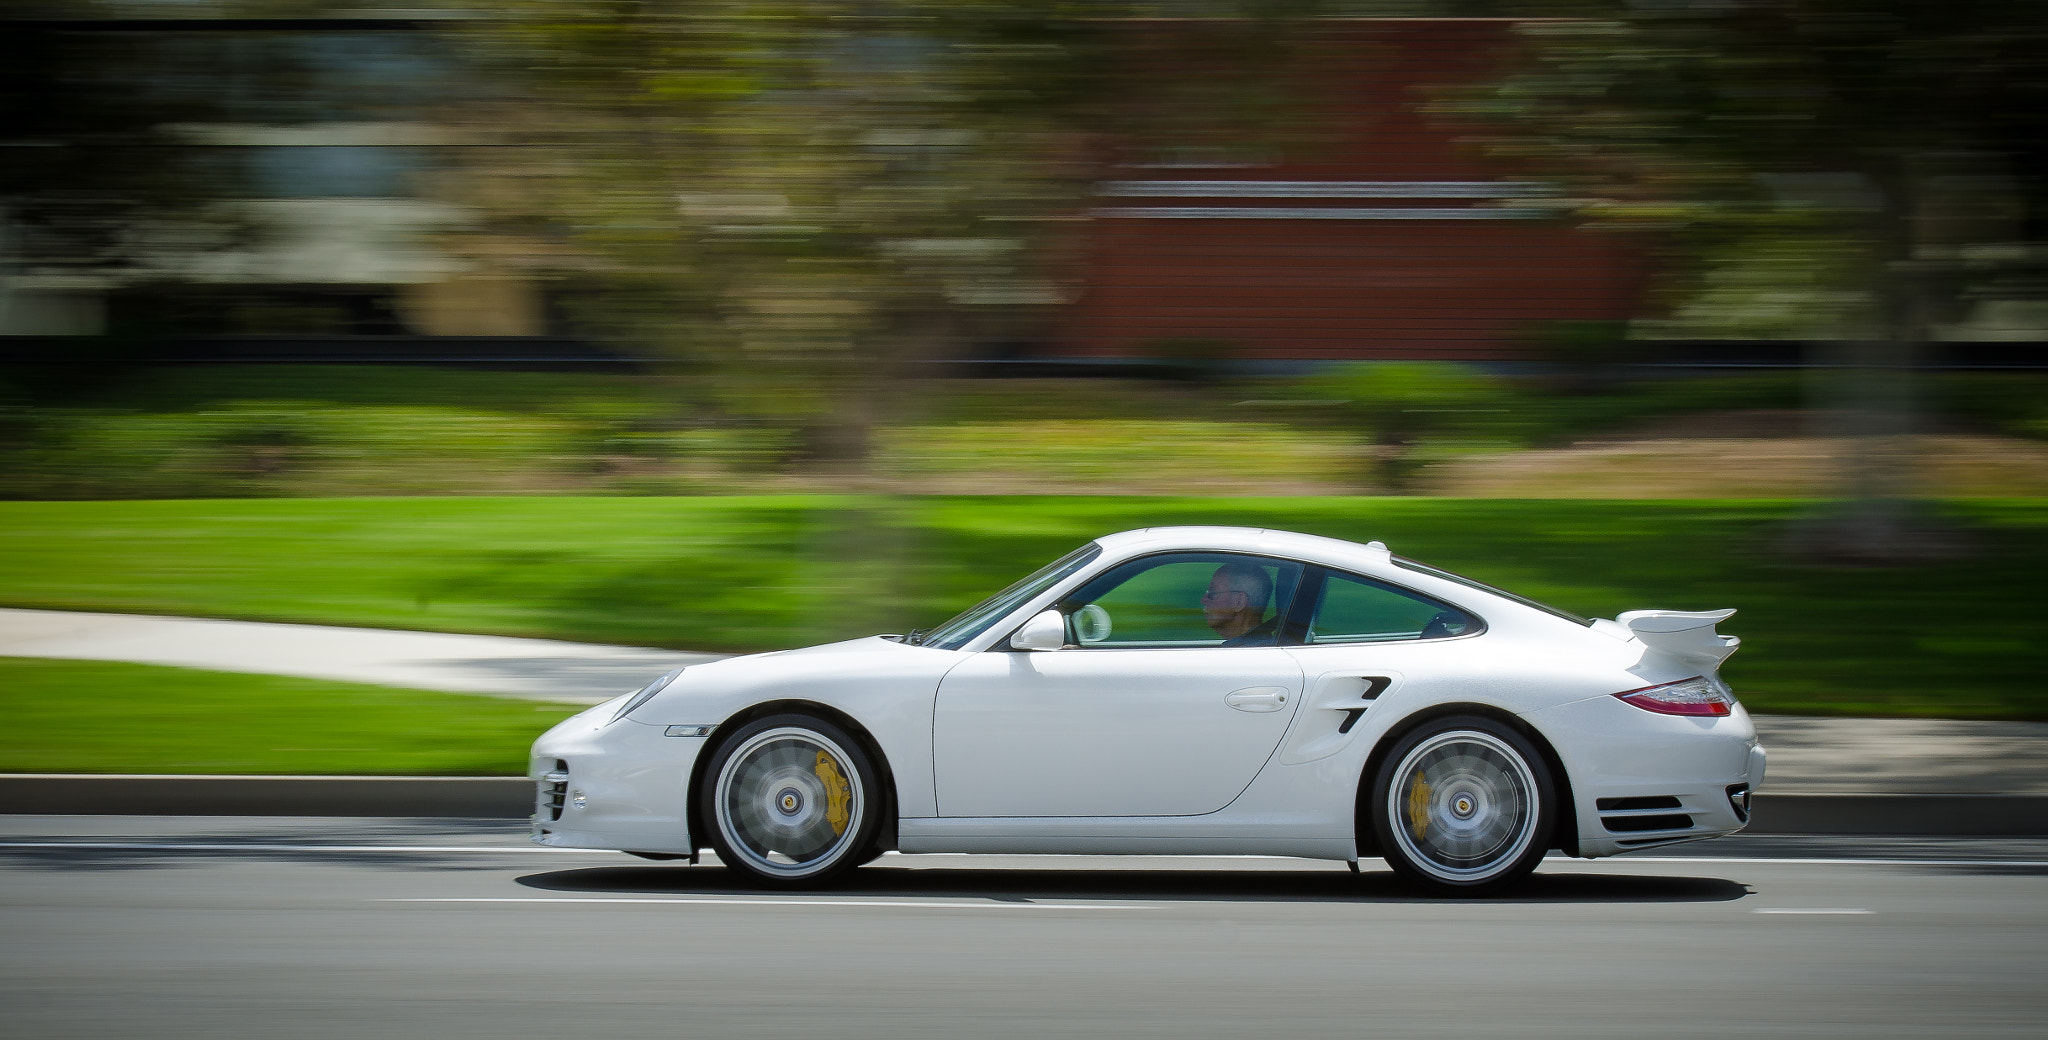 Photograph Panning Porshe by Mike Edwards on 500px